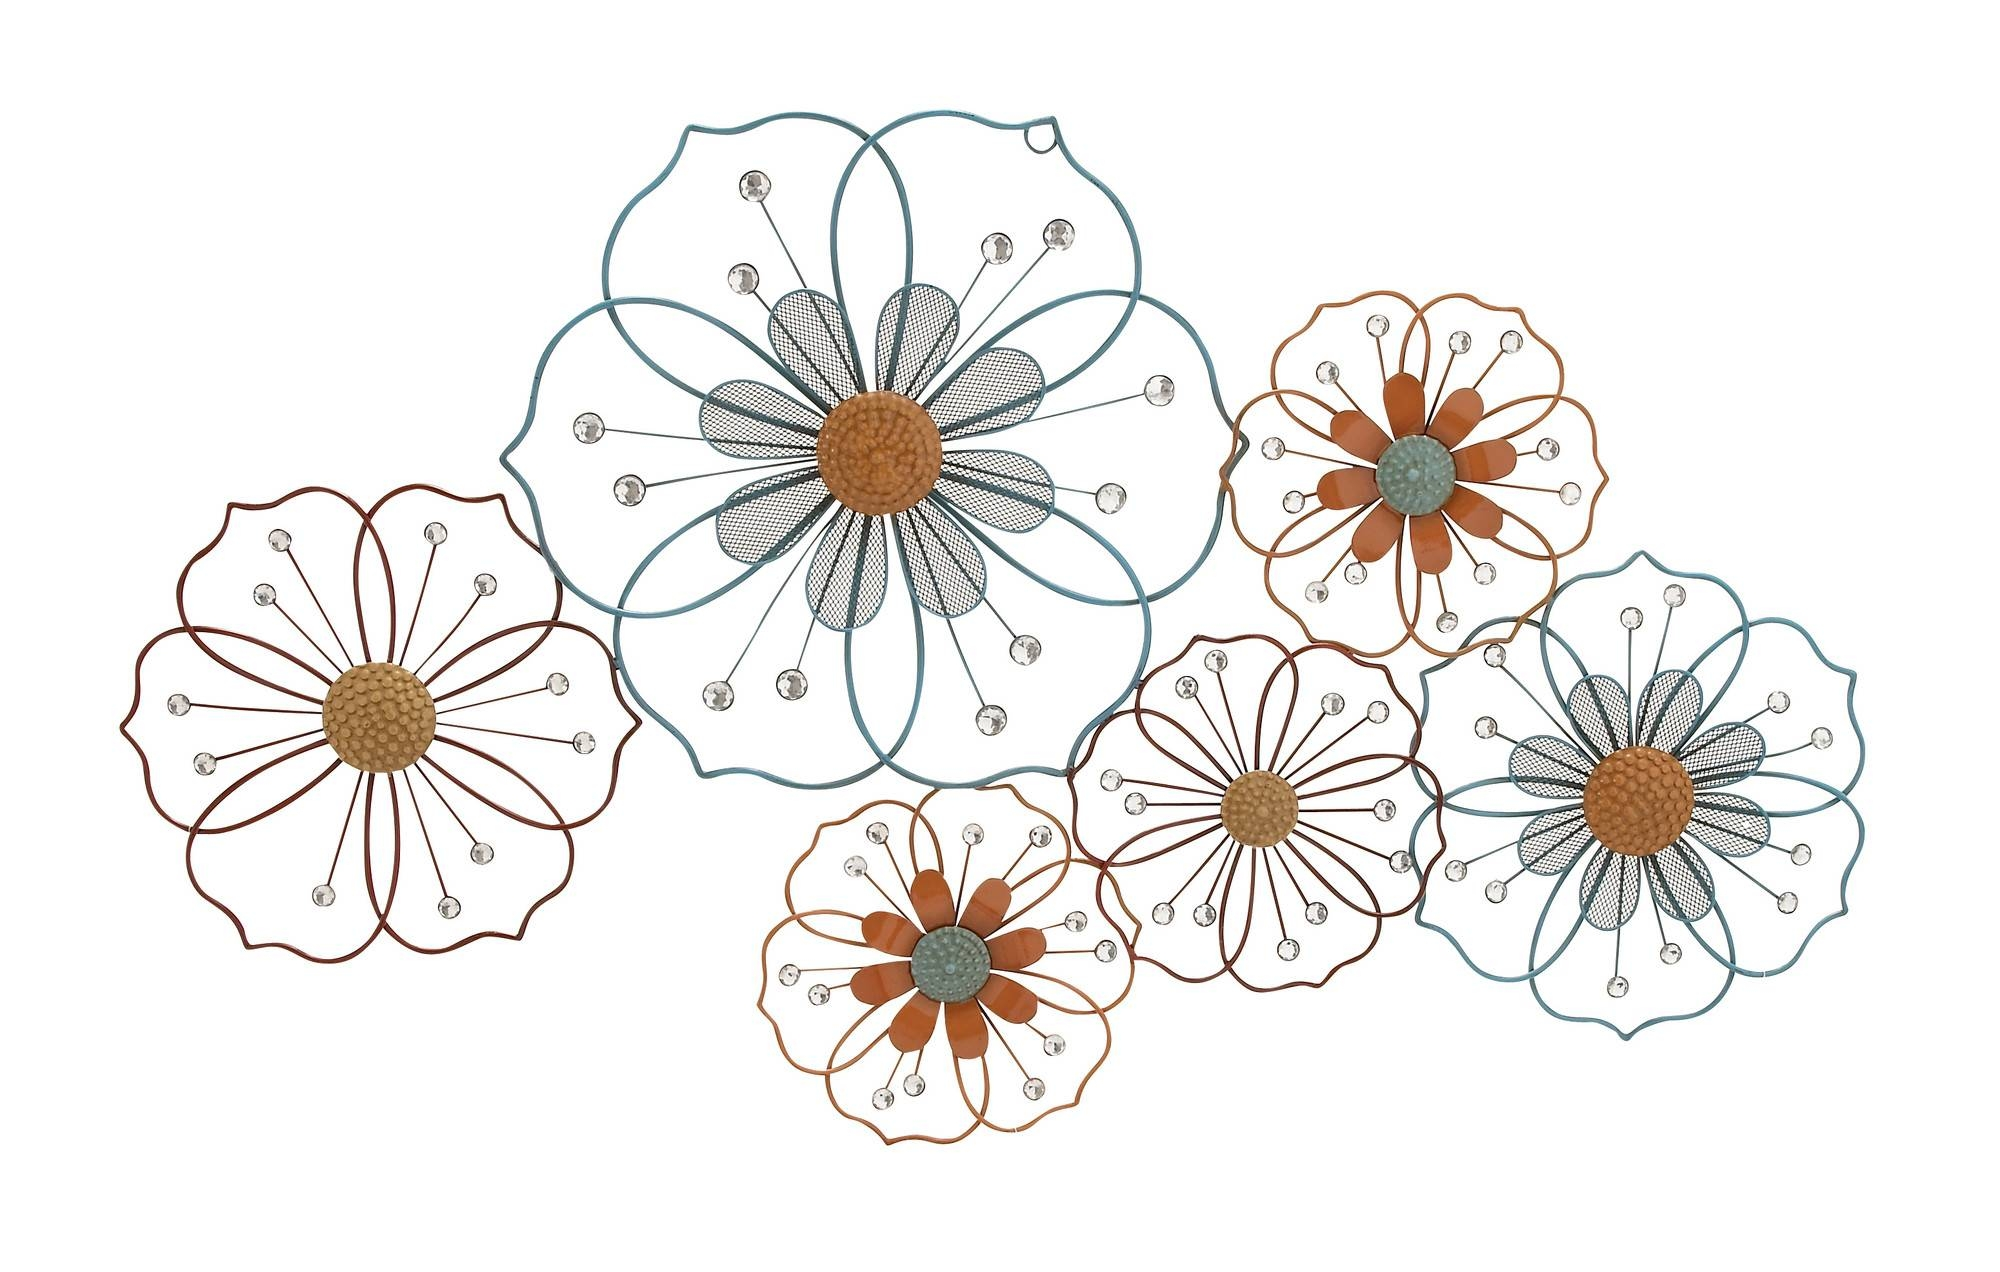 Large Flower Silhouettes – Floral Metal Wall Art Inside Latest Floral Metal Wall Art (View 11 of 20)